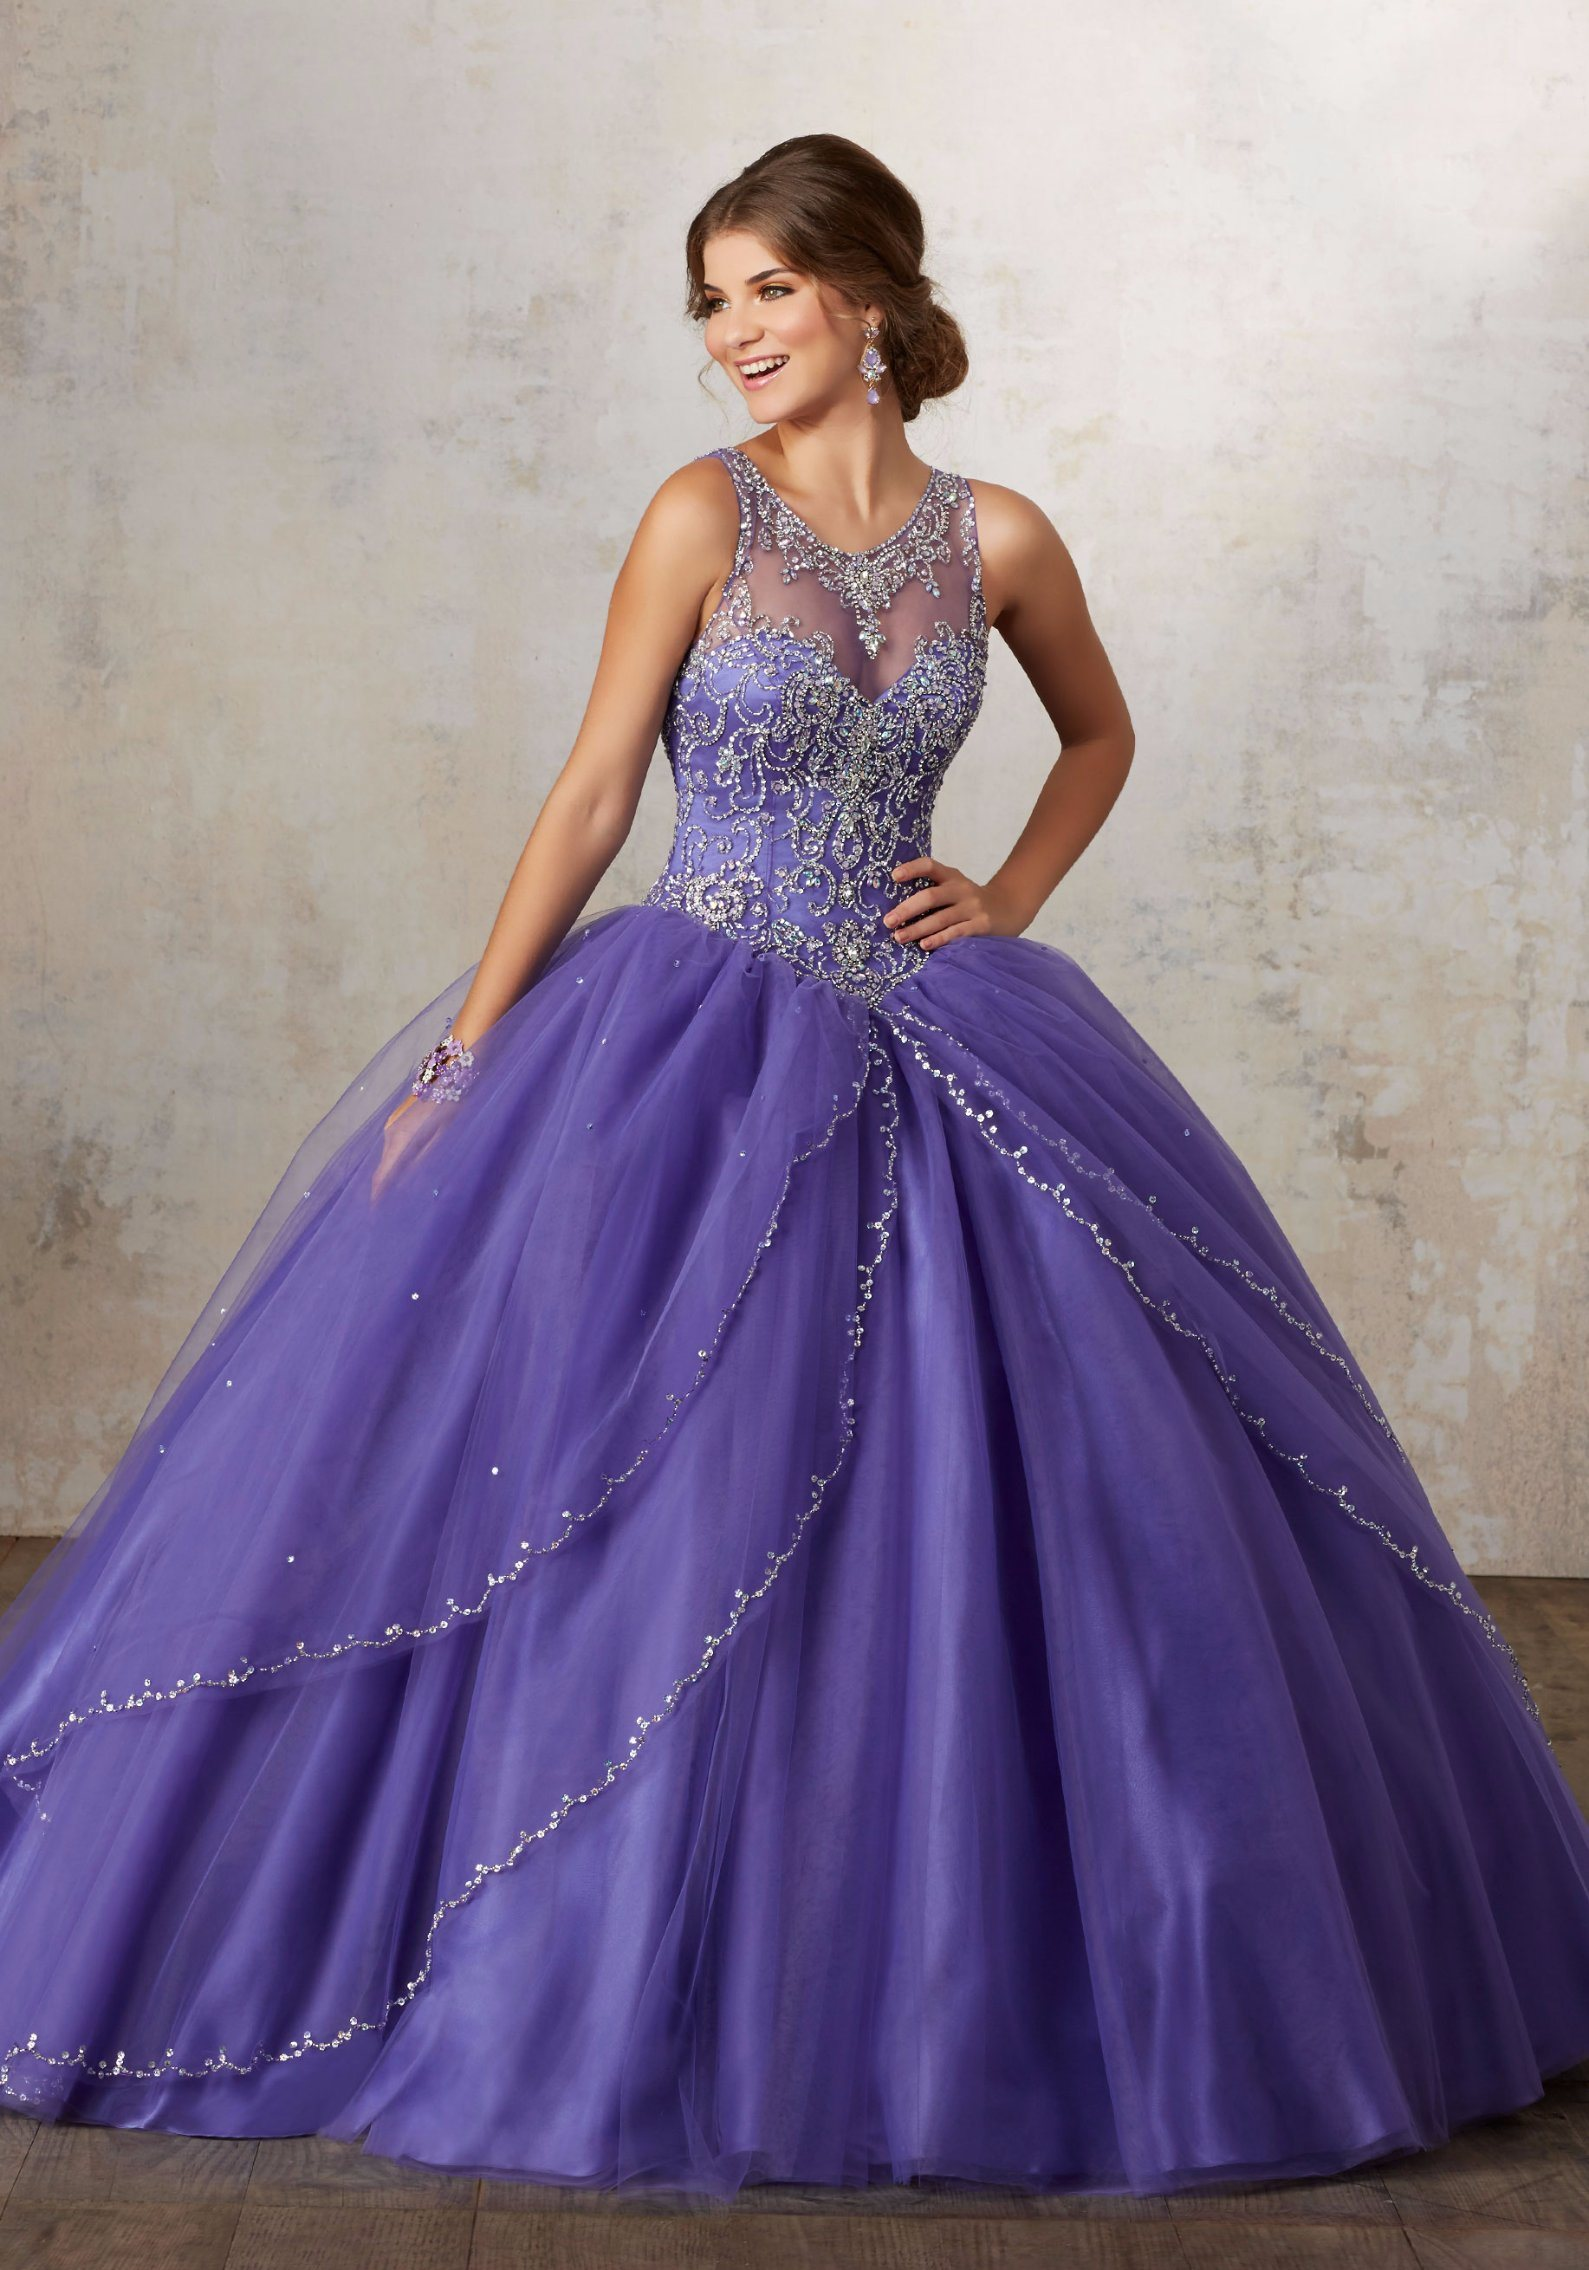 Quinceanera Dresses Blue And Purple